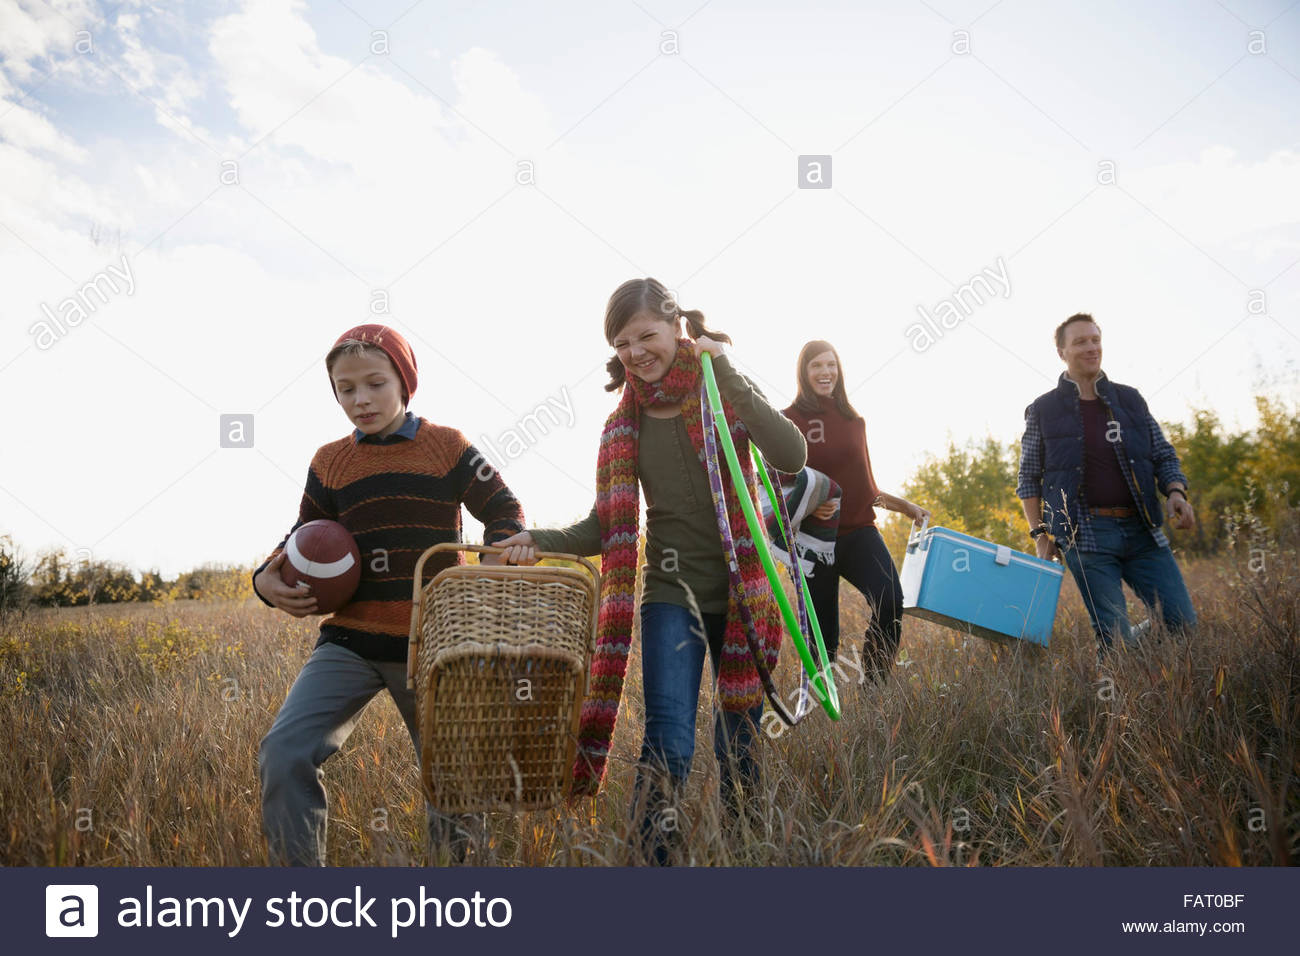 Family carrying picnic supplies in field - Stock Image